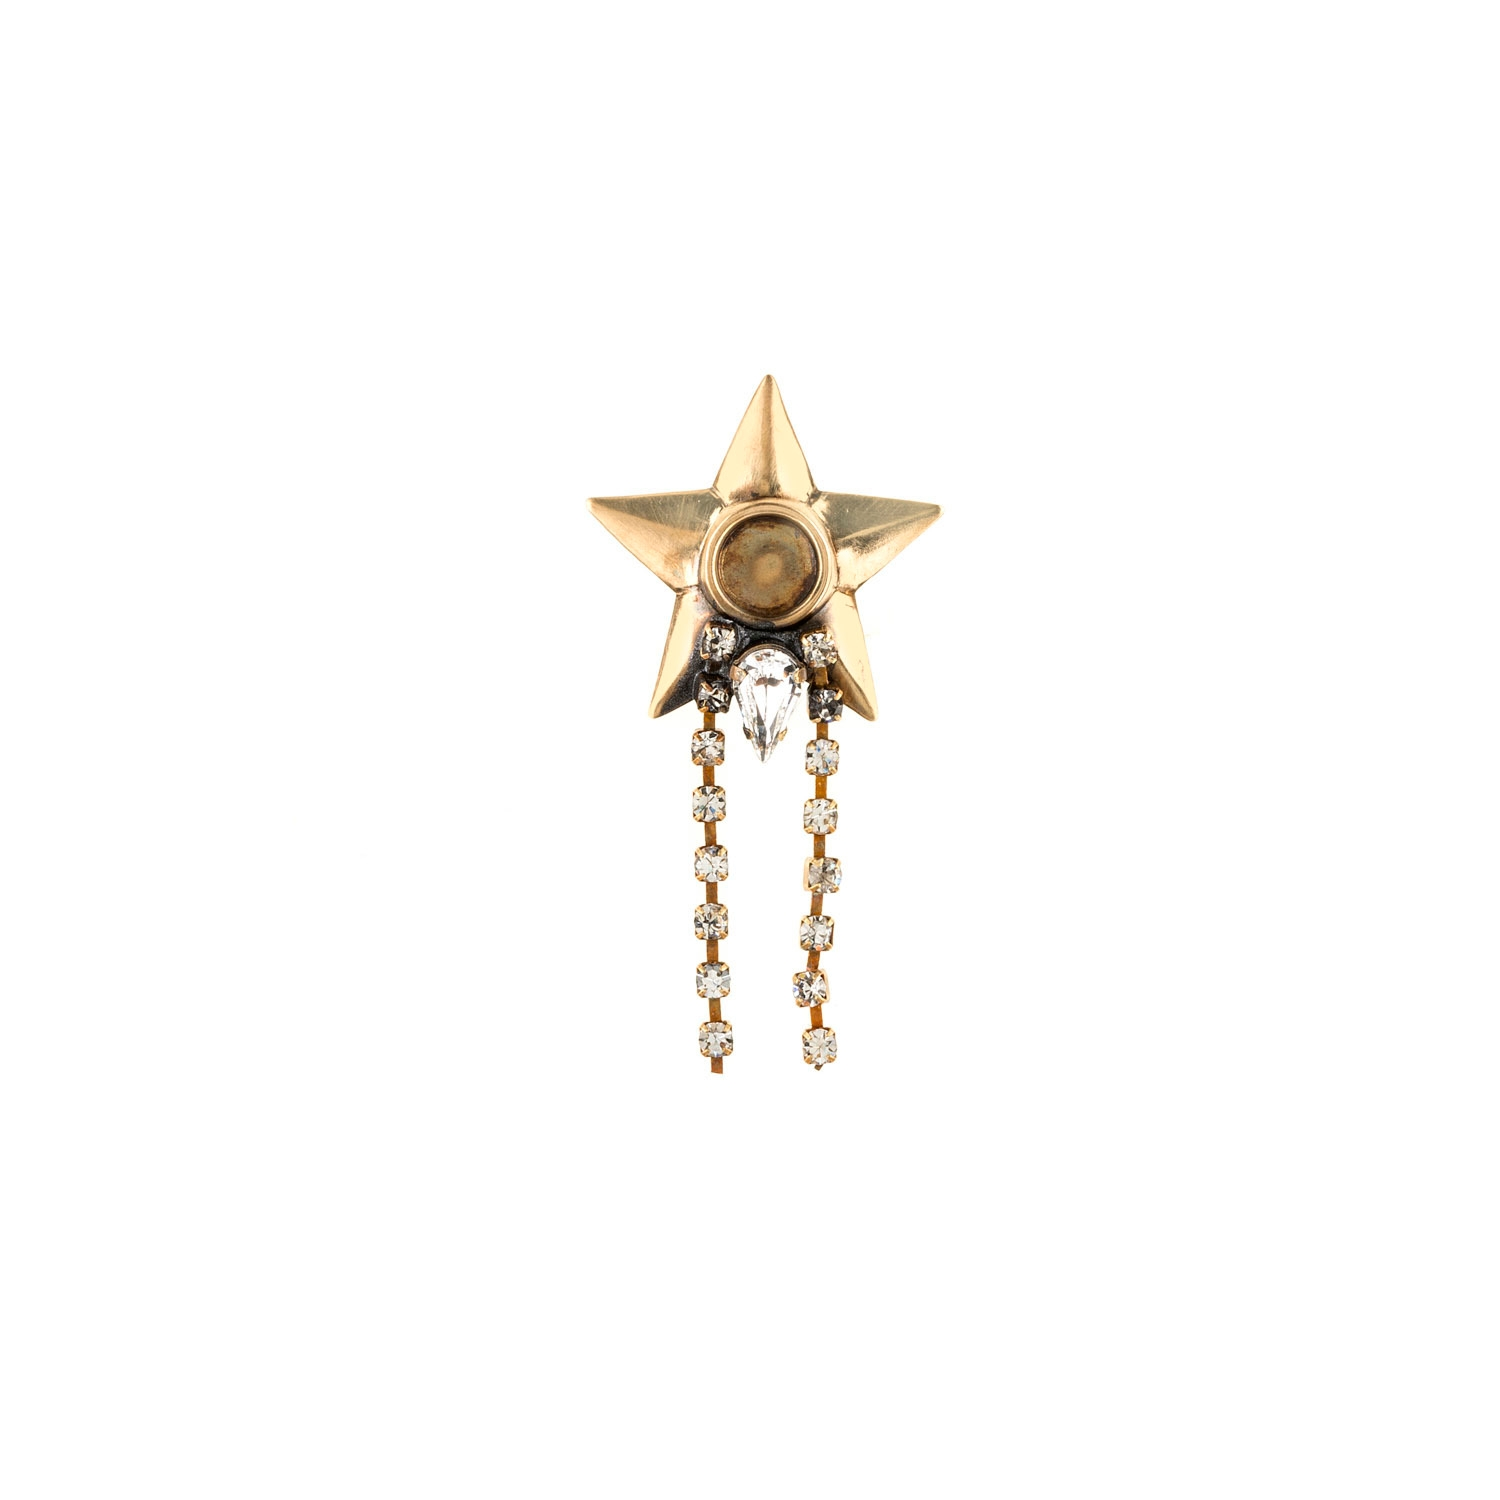 HALO & CO MONO DISTRESSED GOLD STAR EAR CUFF. WEAR IT WITH MULTIPLE CUFFS